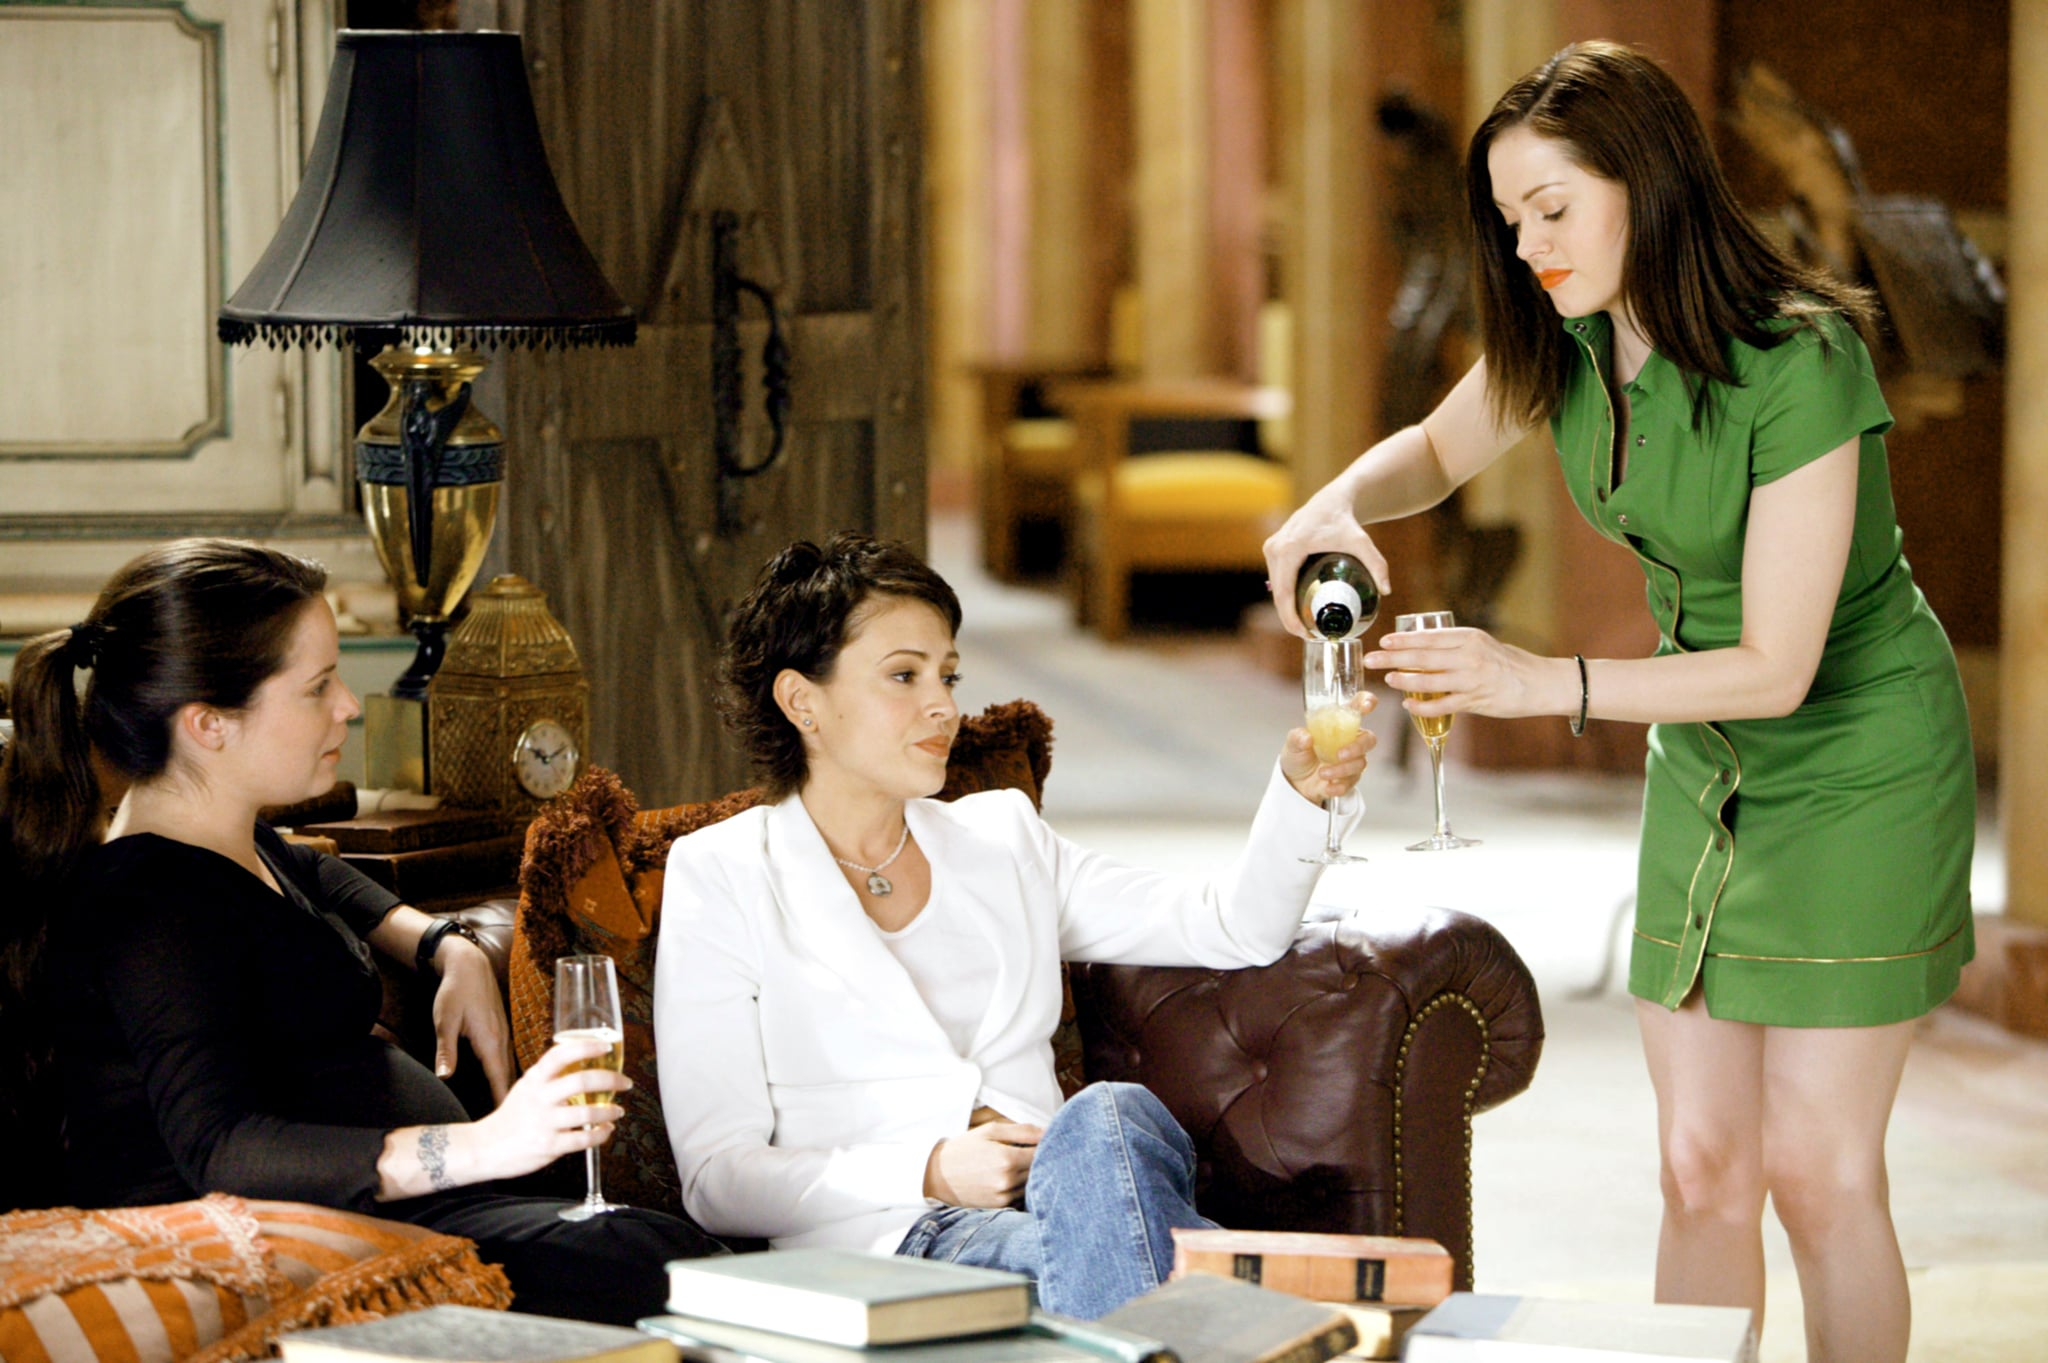 CHARMED, Holly Marie Combs, Alyssa Milano, Rose McGowan, 'Witch Wars', (Season 6), 1998-2006, photo: Richard Cartwright / Viacom / courtesy: Everett Collection